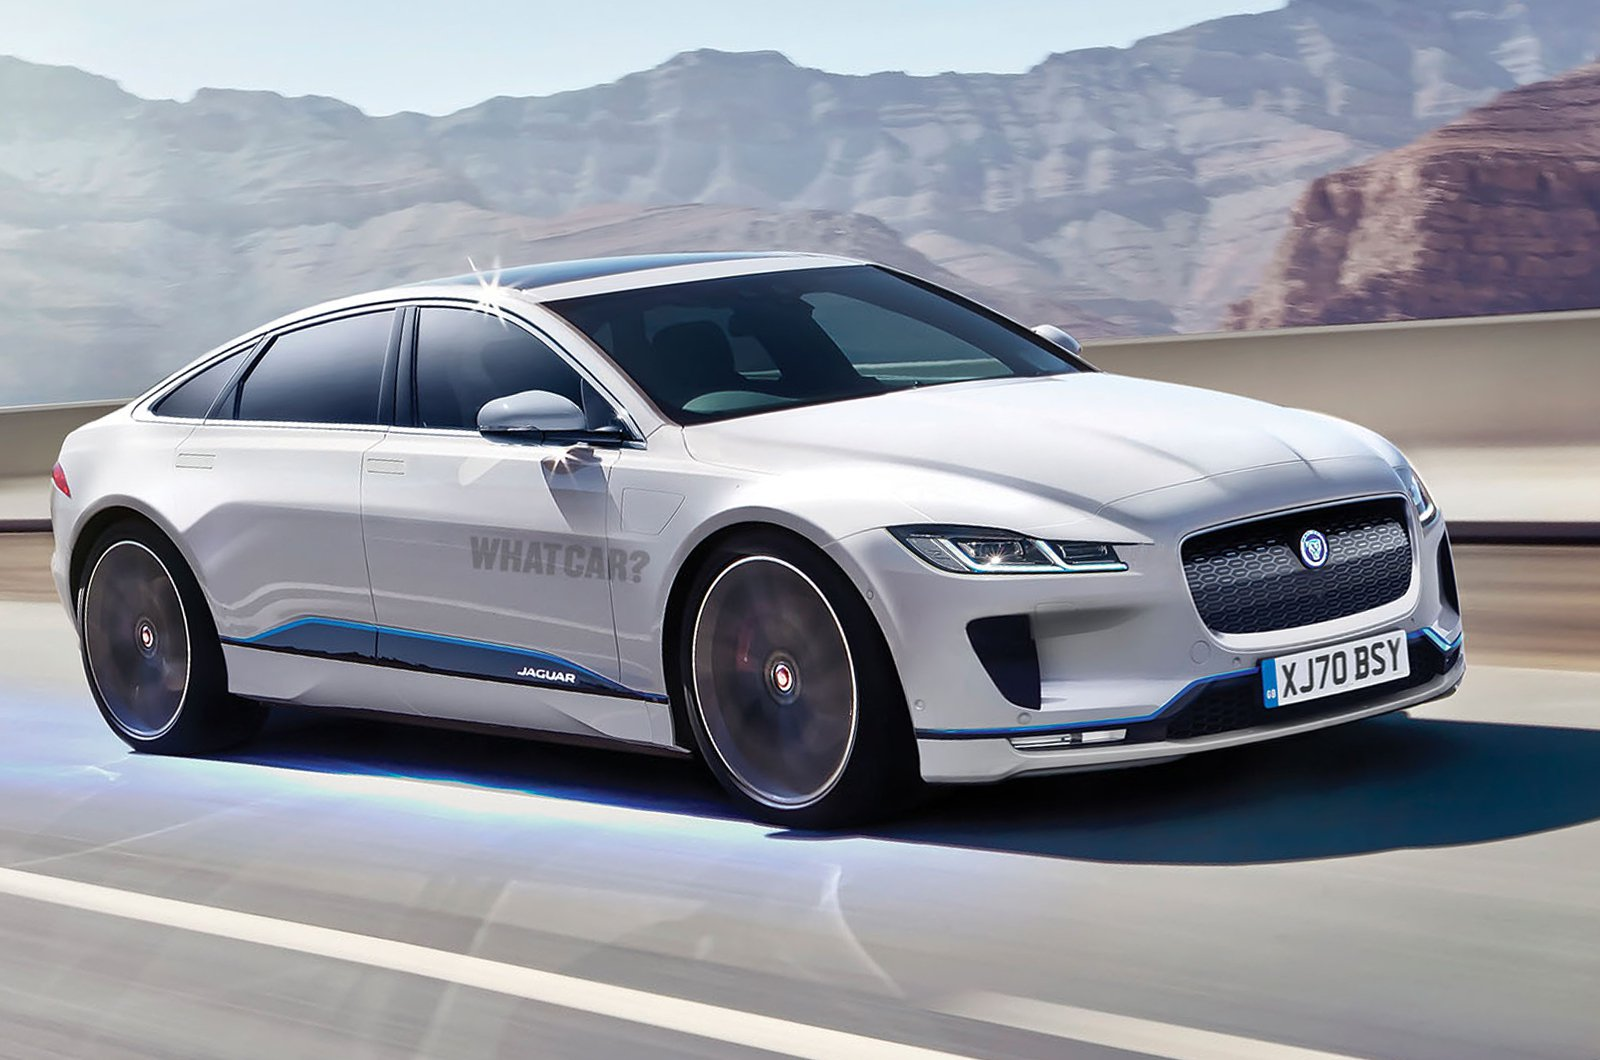 21 New 2020 Jaguar XJ Configurations